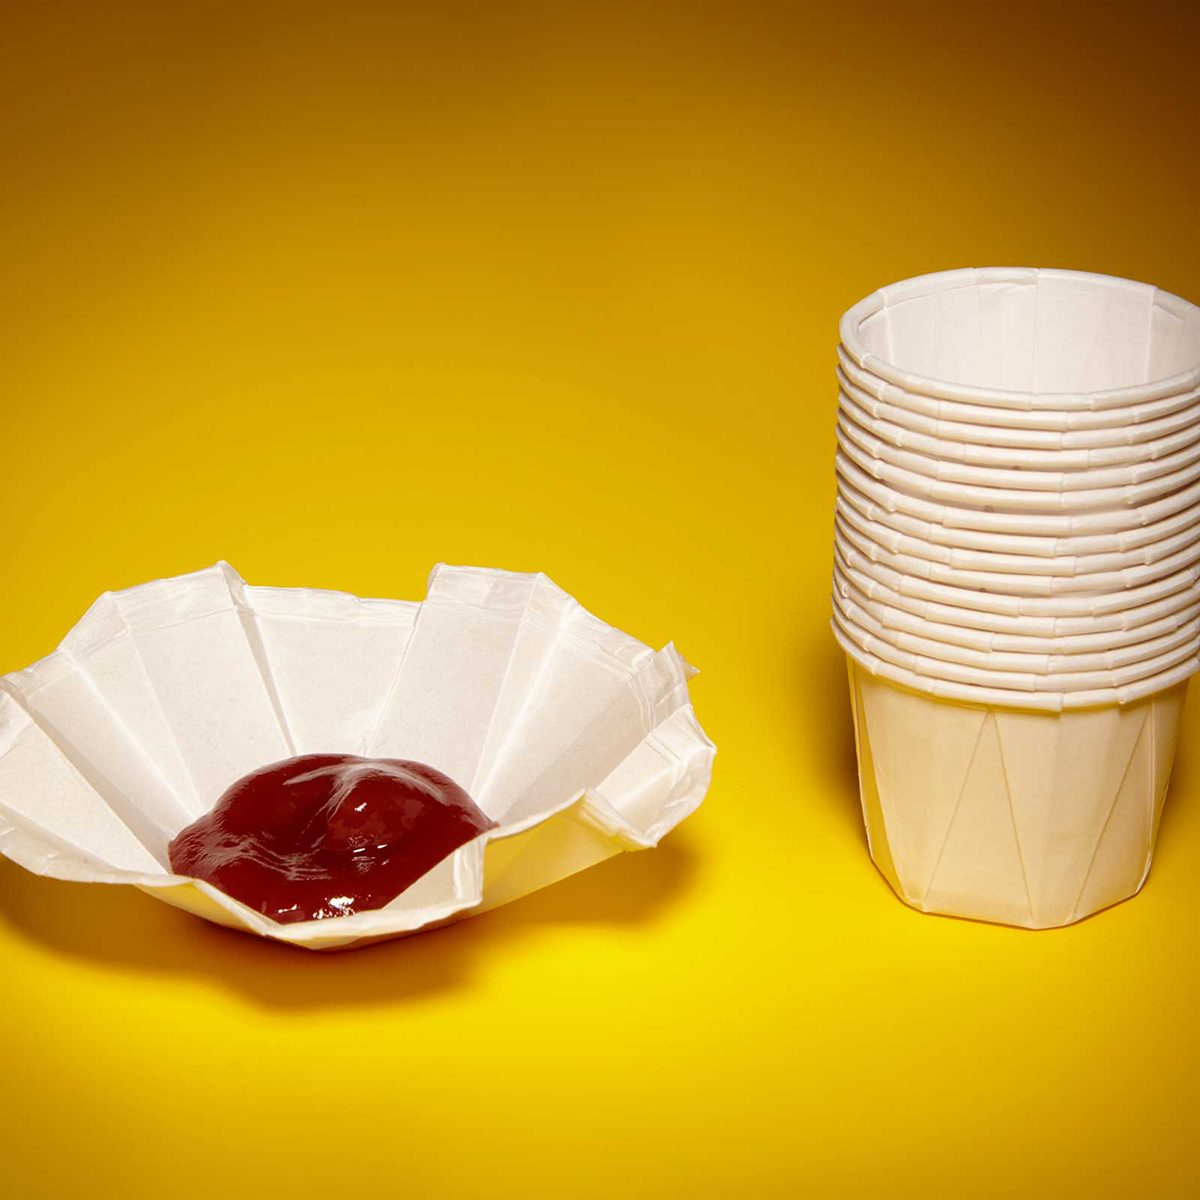 Unfolded ketchup cup